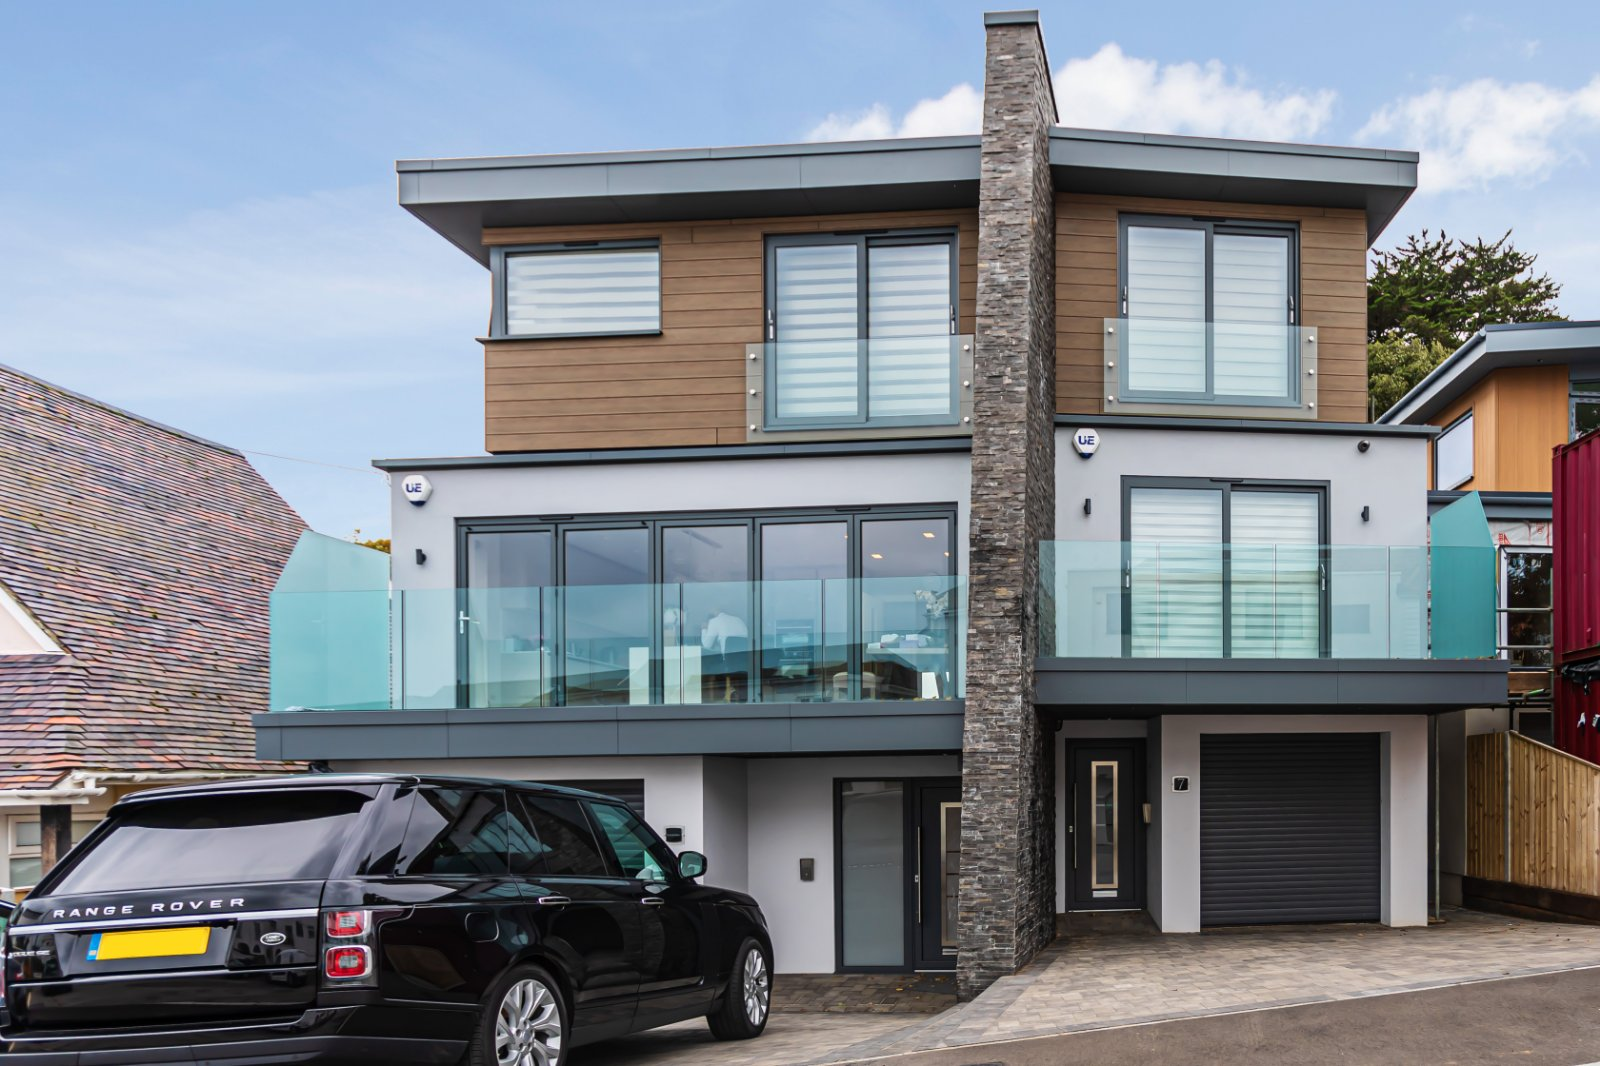 3 bed house to rent in Sandbanks - Property Image 1